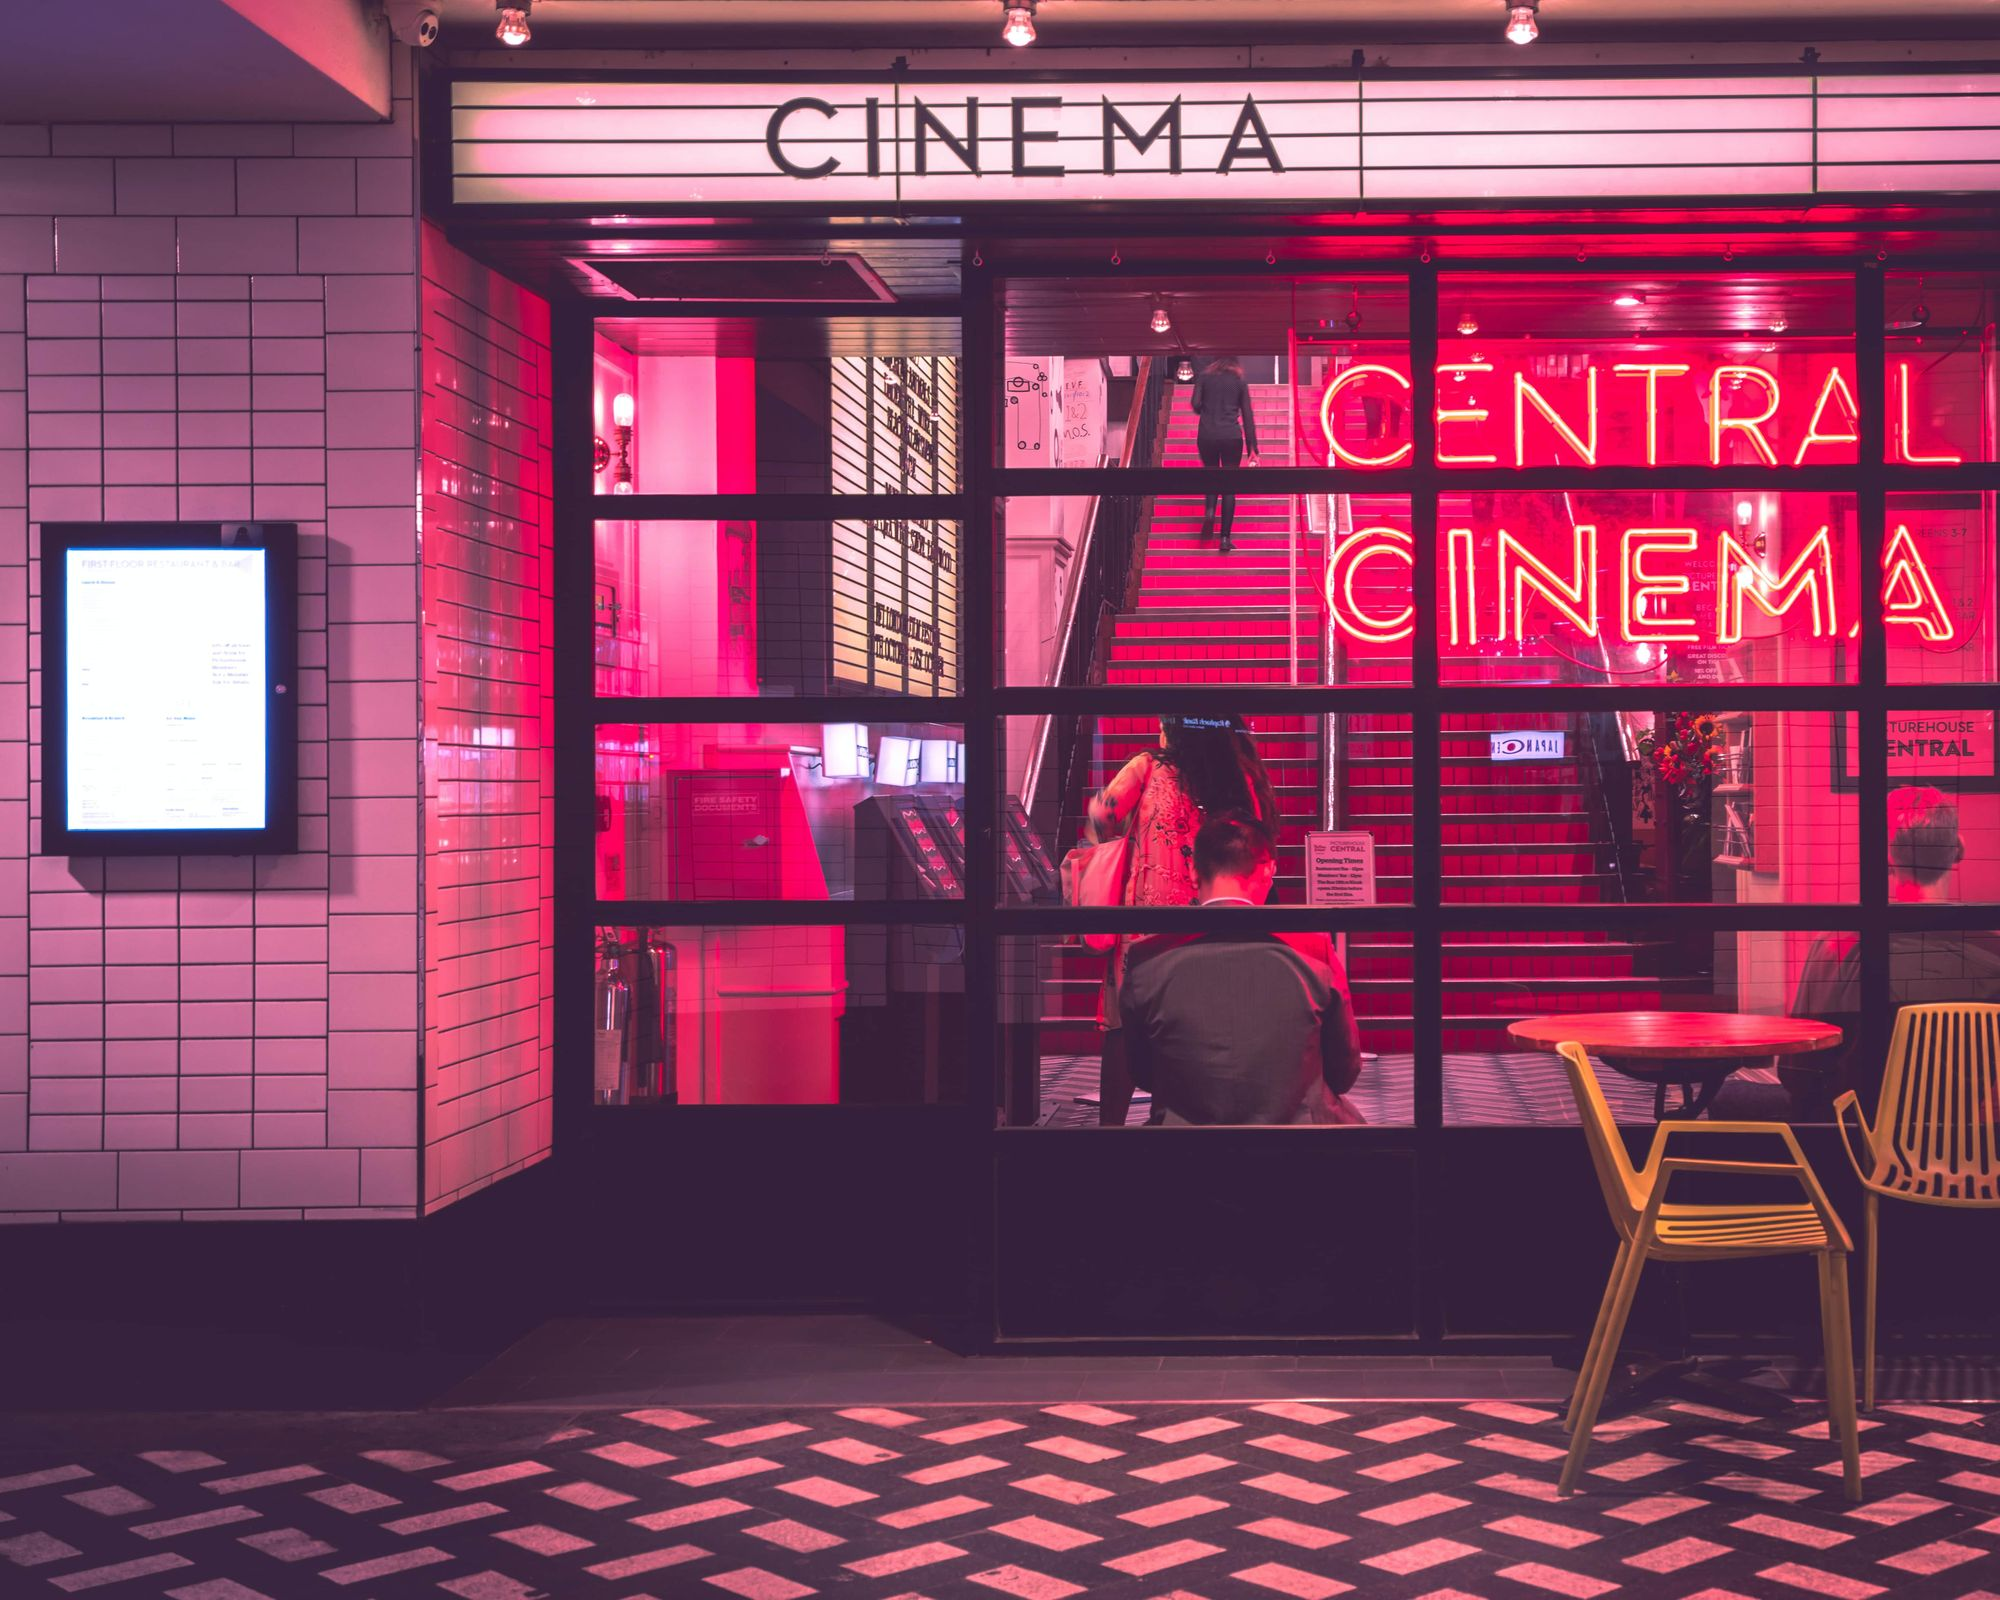 picture-of-cinema-with-neon-sign